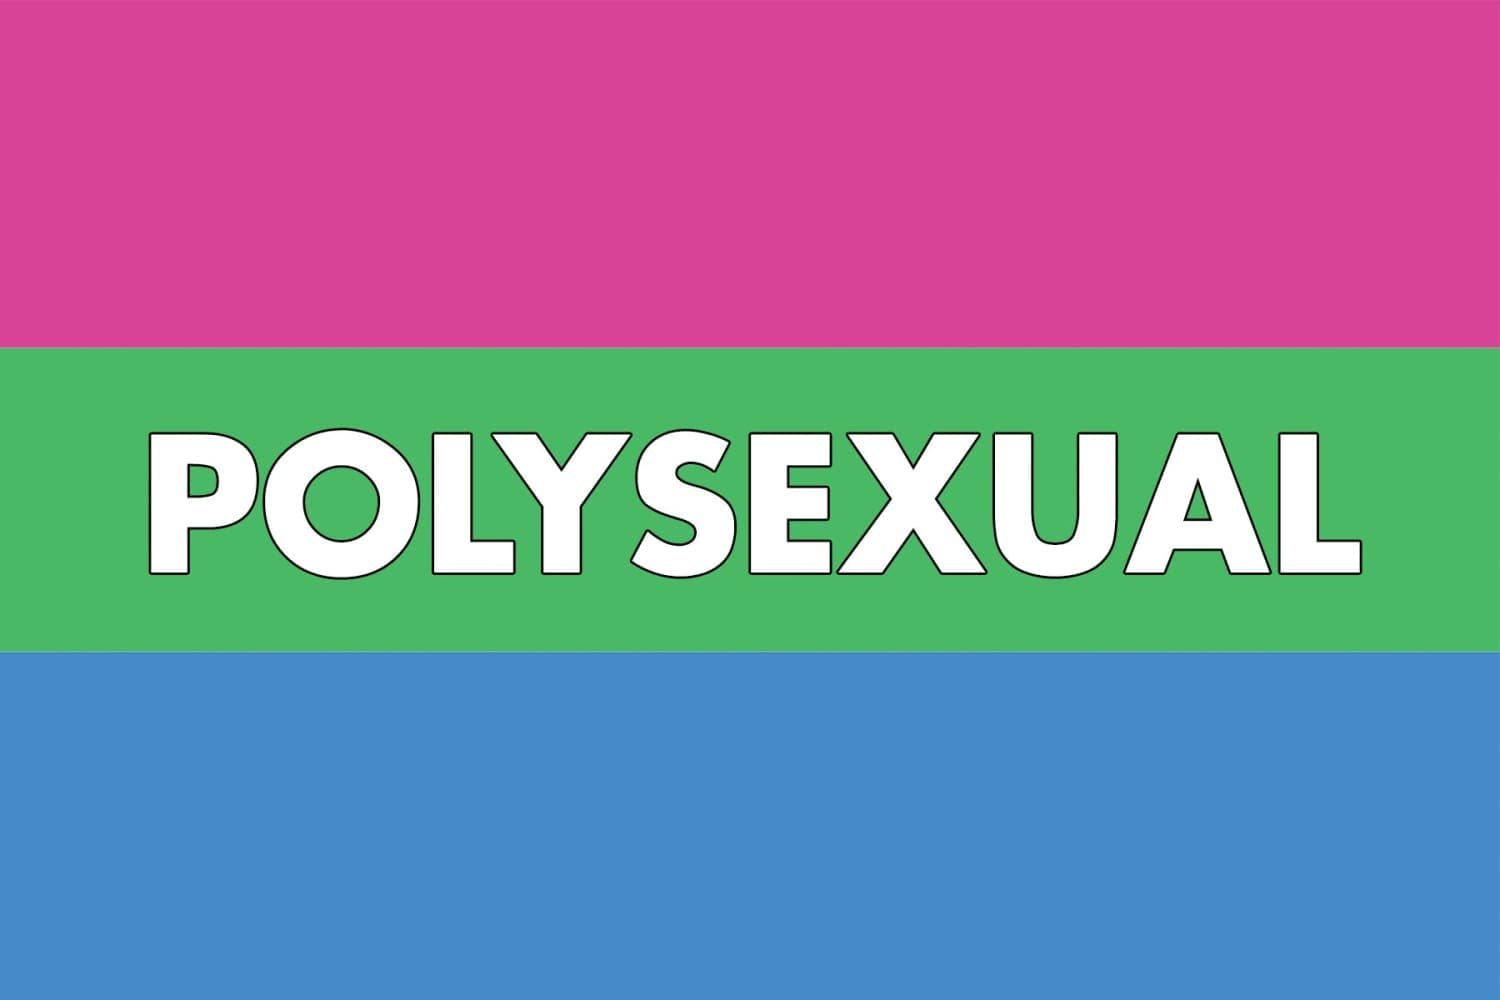 Polysexual Definition | Polysexual Pride Flag